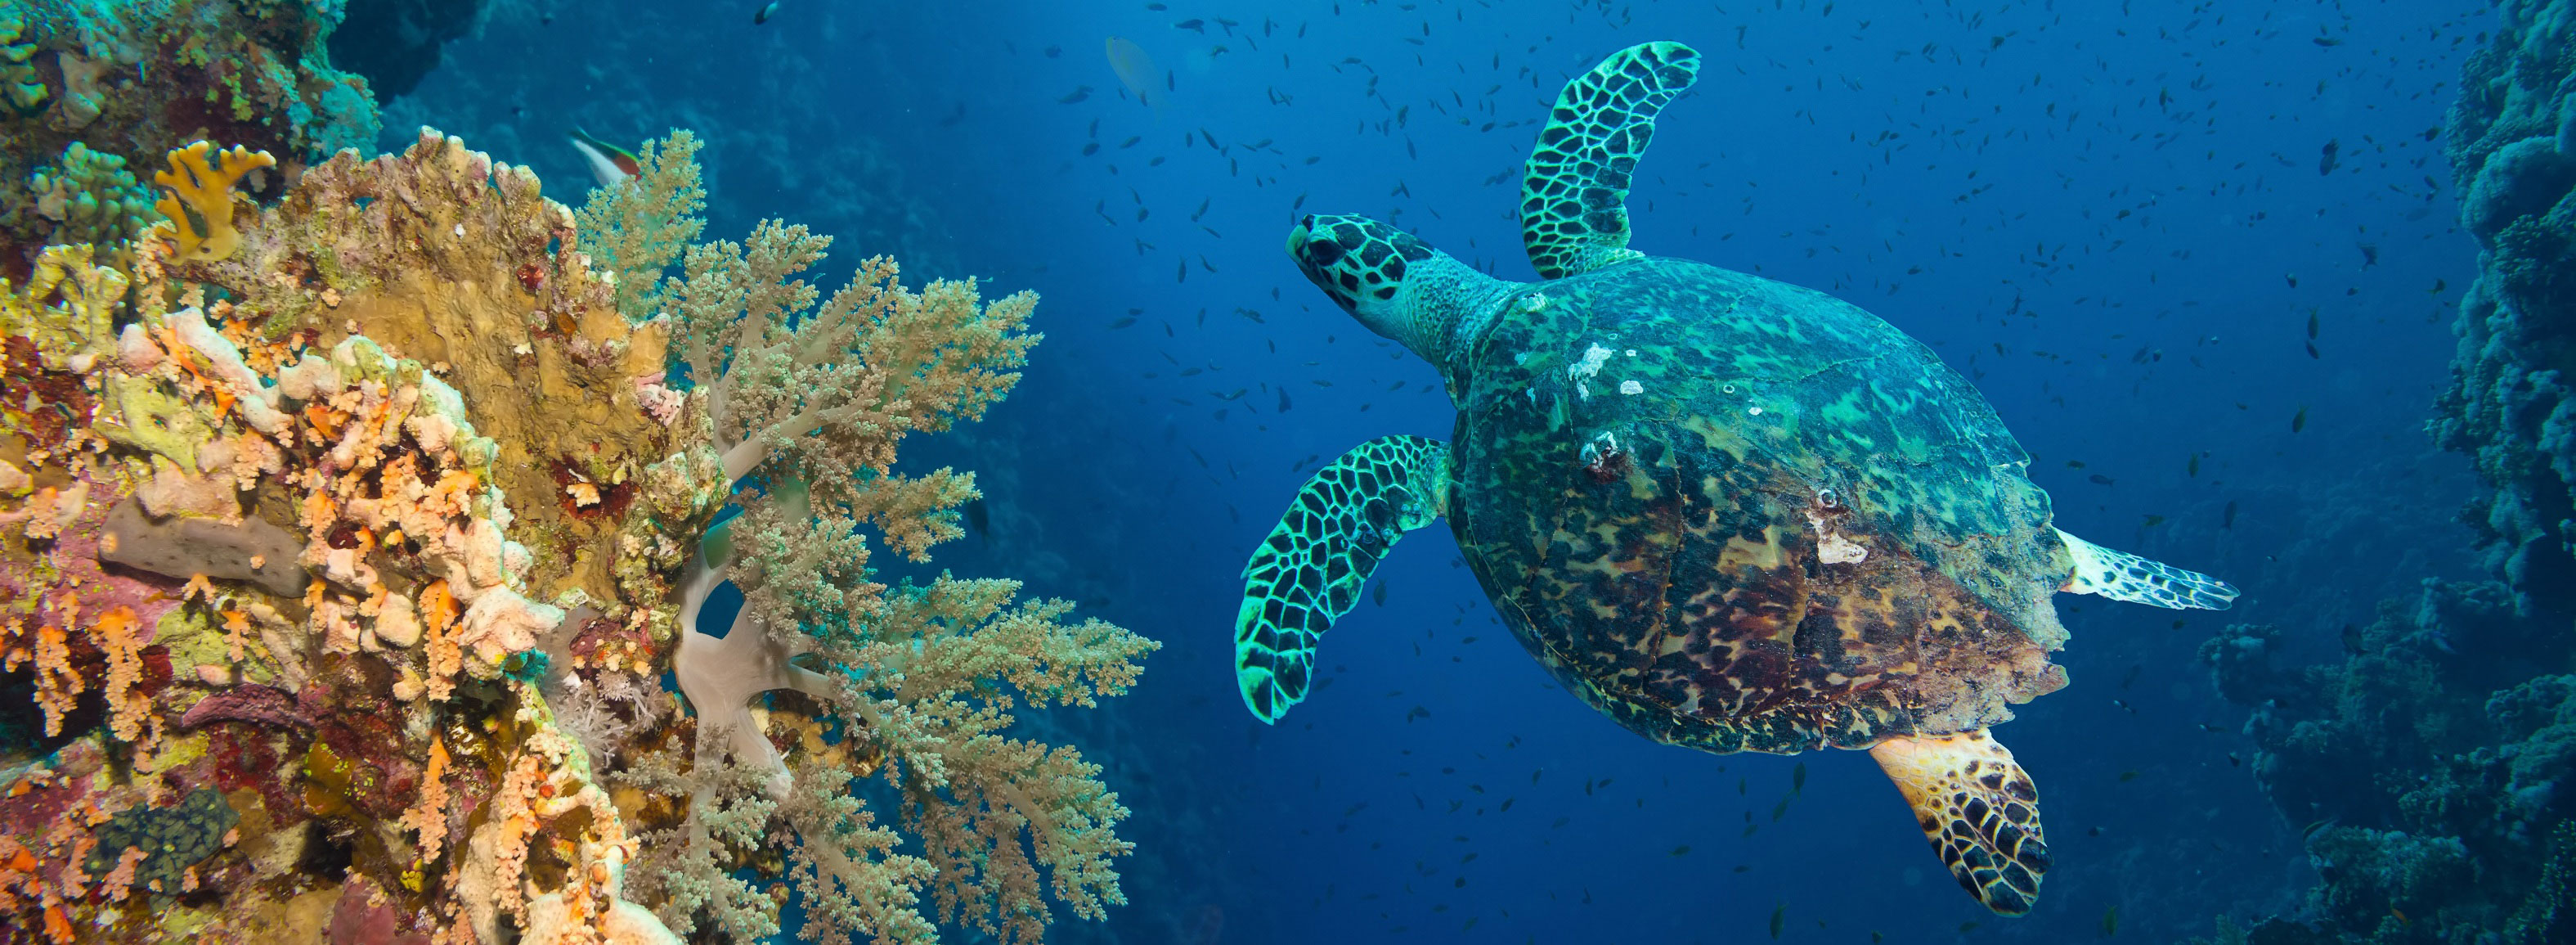 Fun and Interesting Great Barrier Reef Facts for Kids & Adults